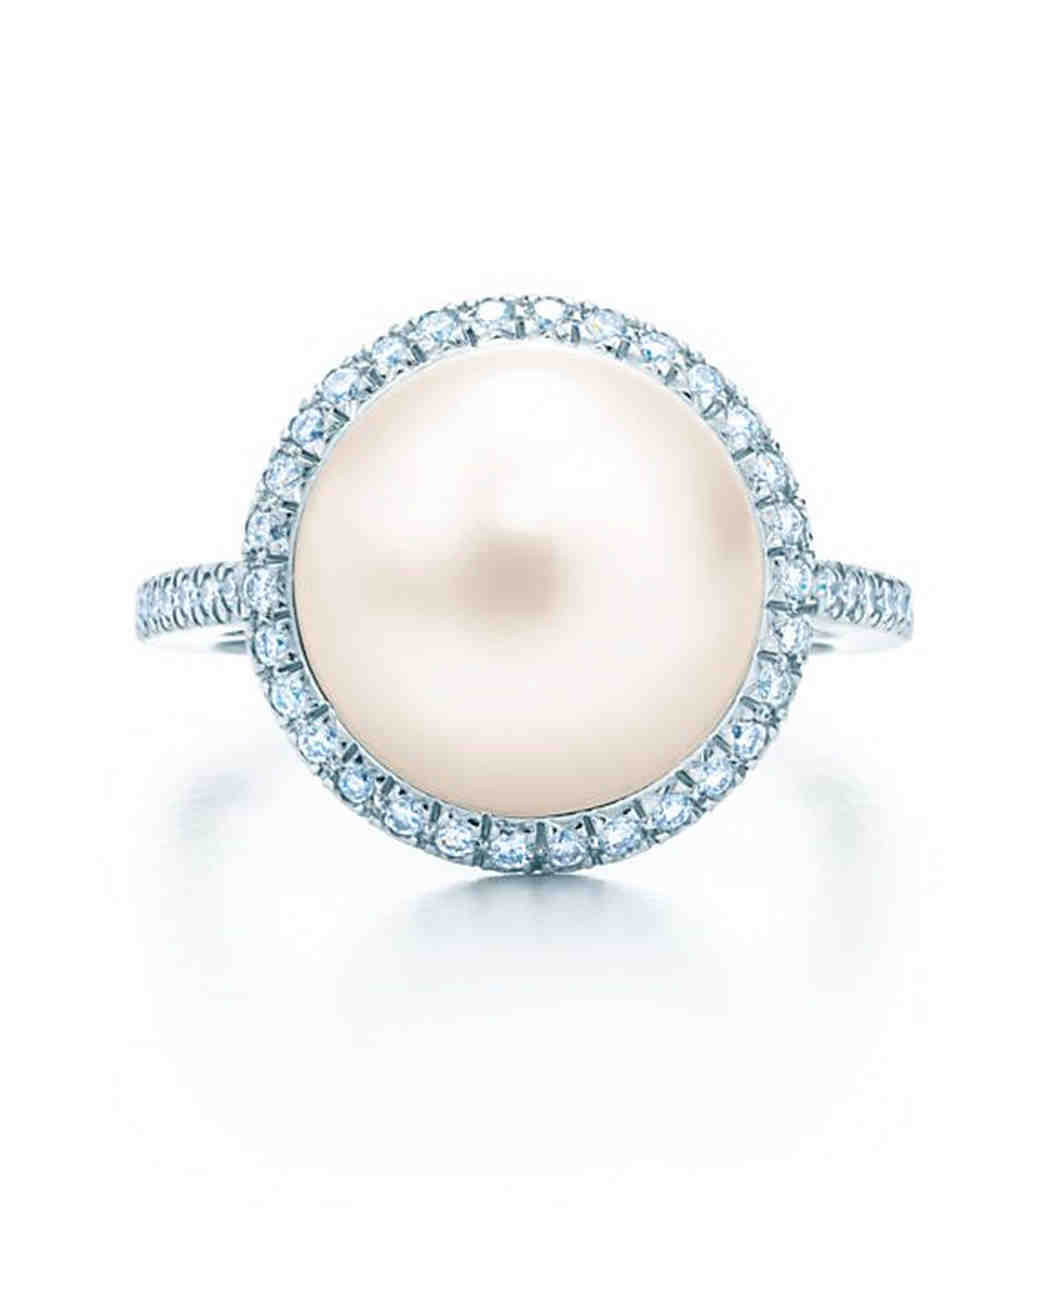 Tiffany & Co. Pearl Engagement Ring